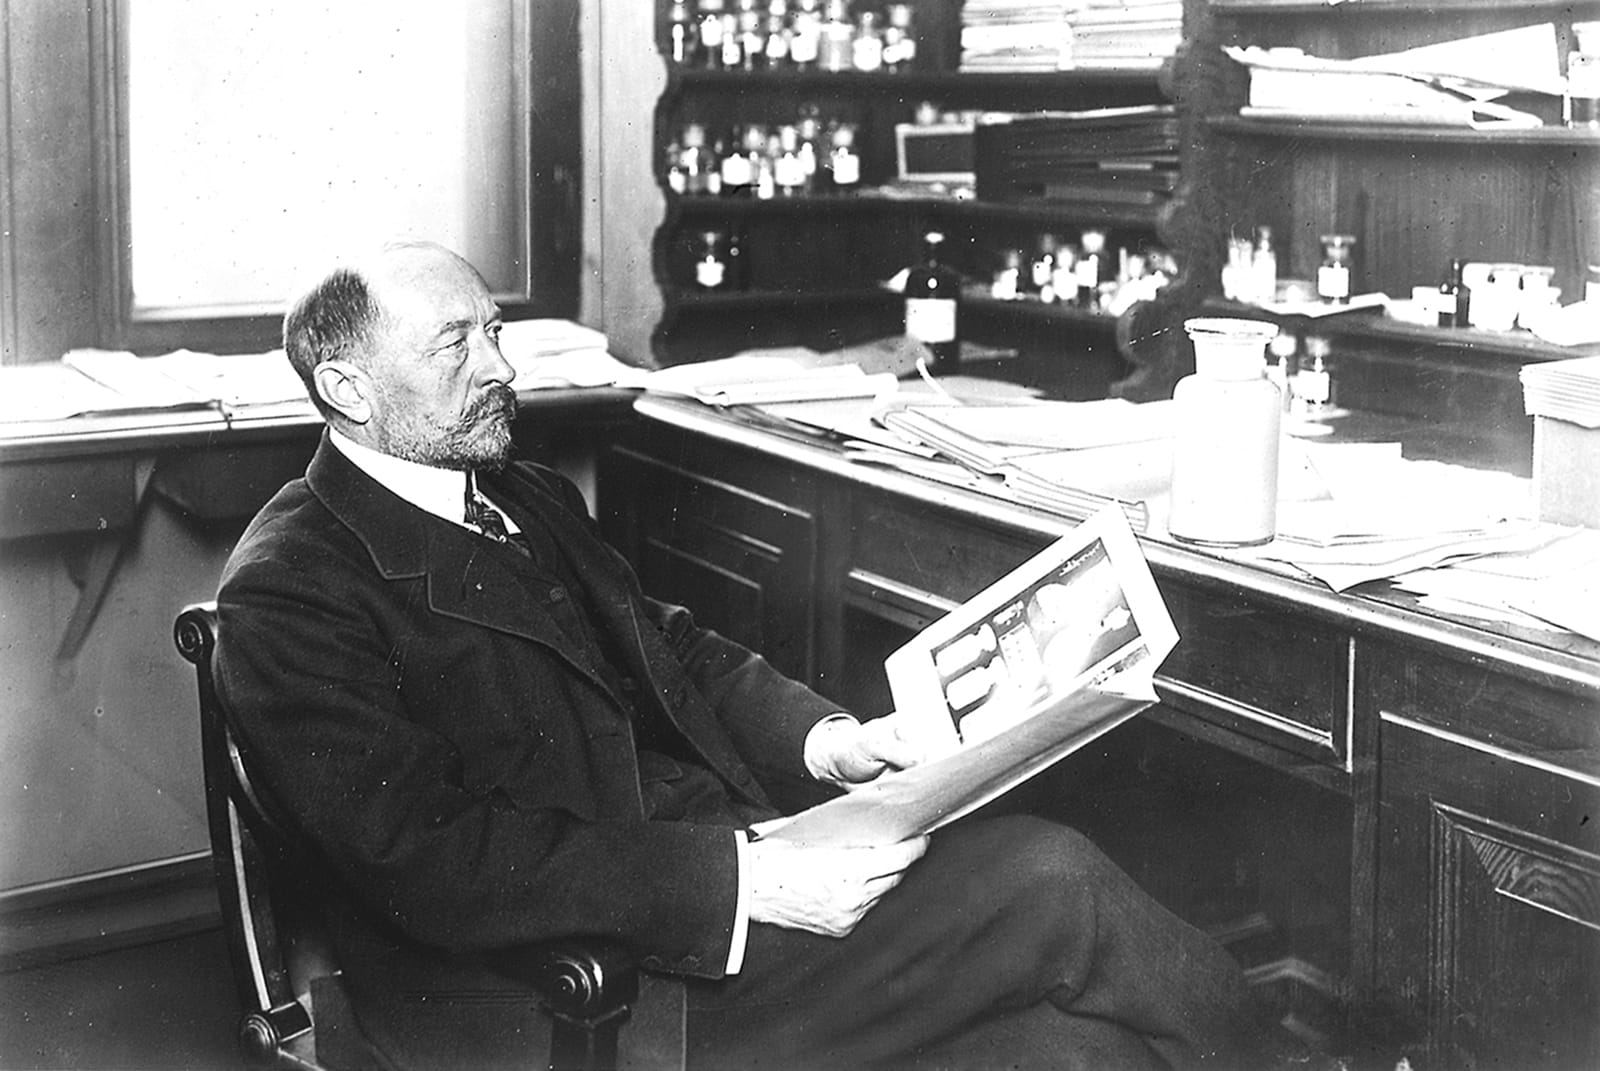 Emil von Behring sitting in lab